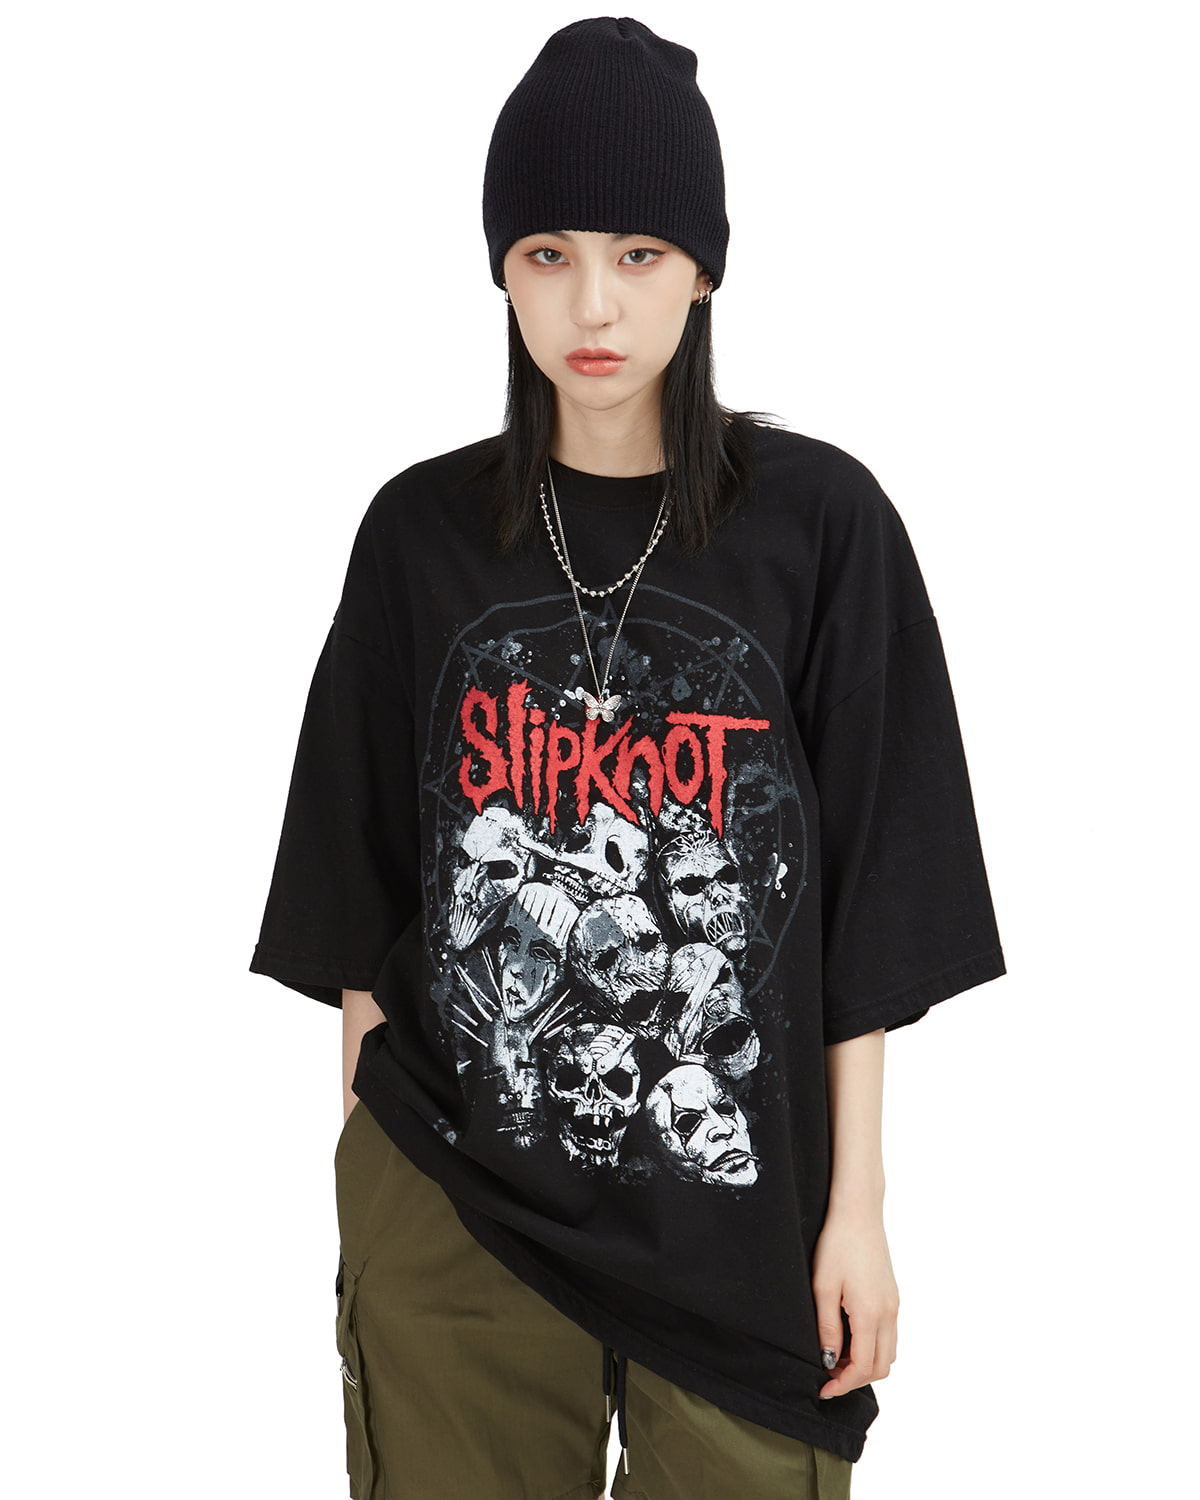 raucohouse-SLIPKNOT PRINTING 1/2 T - RAUCO HOUSE♡韓國男裝上衣